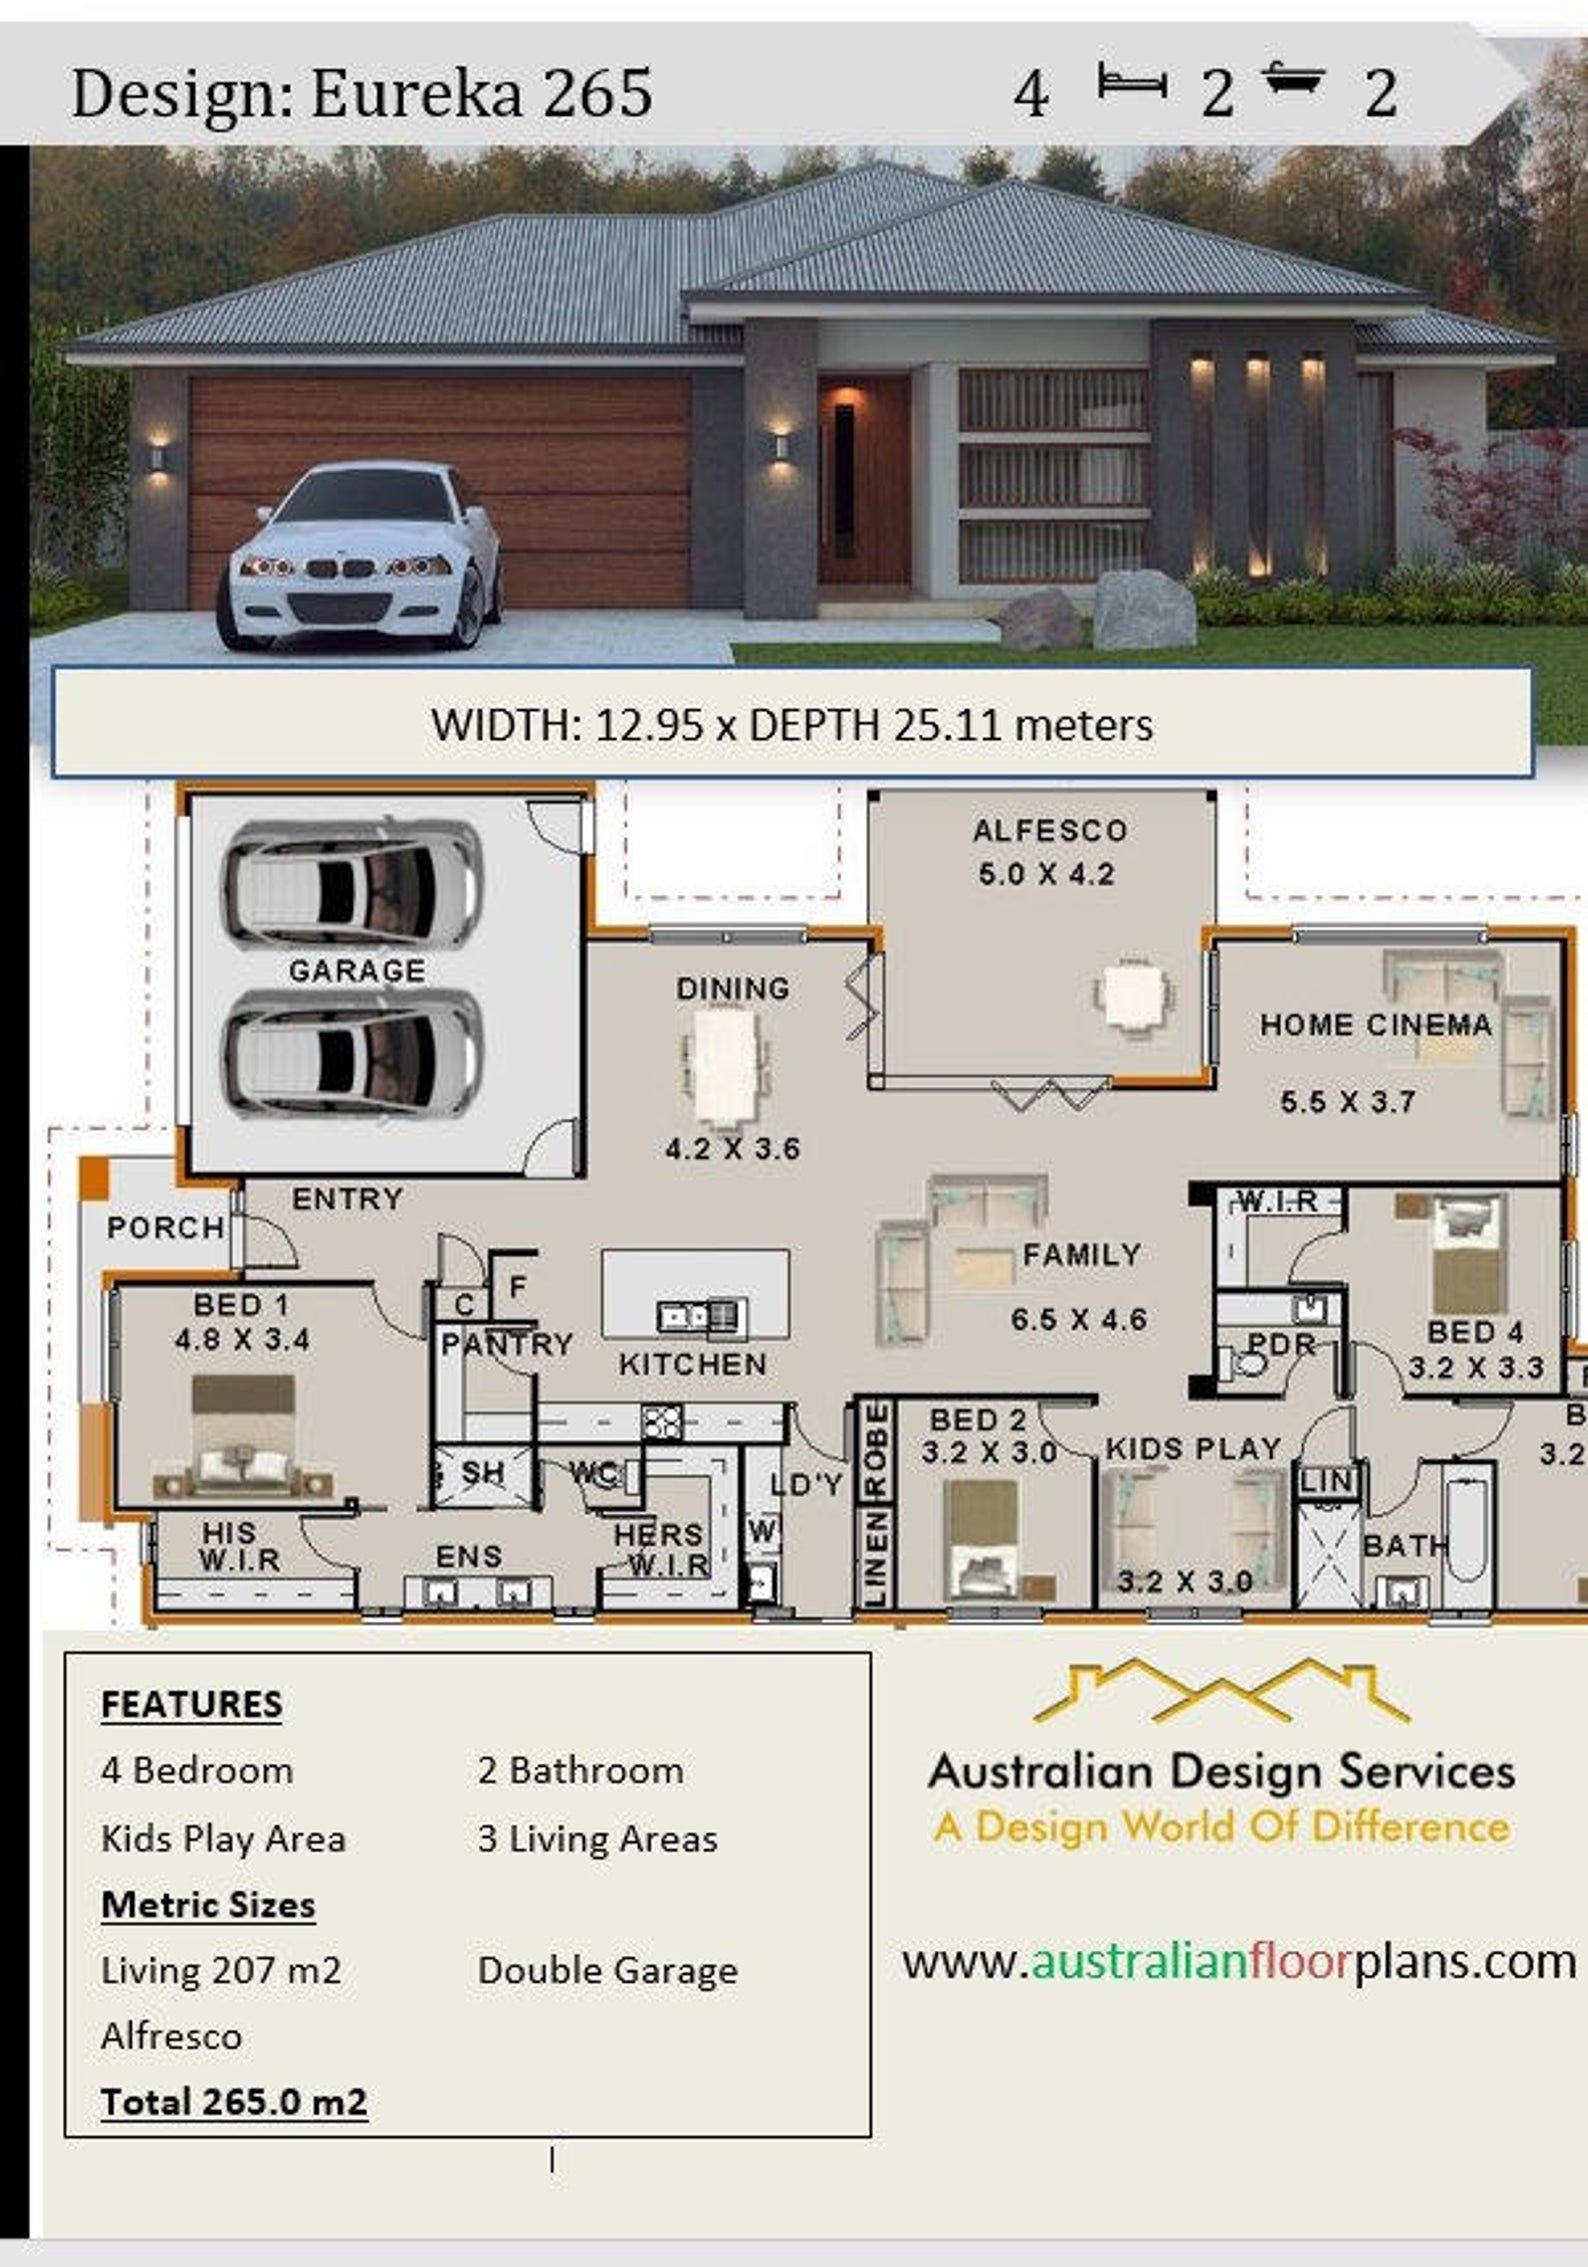 New Modern Home Plan 267 5 M2 Or 2873 Sq Feet 4 Bedroom Home Cinema Kids Play Room Concept House Plans For Sale In 2020 House Plans Australia Modern House Plans Family House Plans